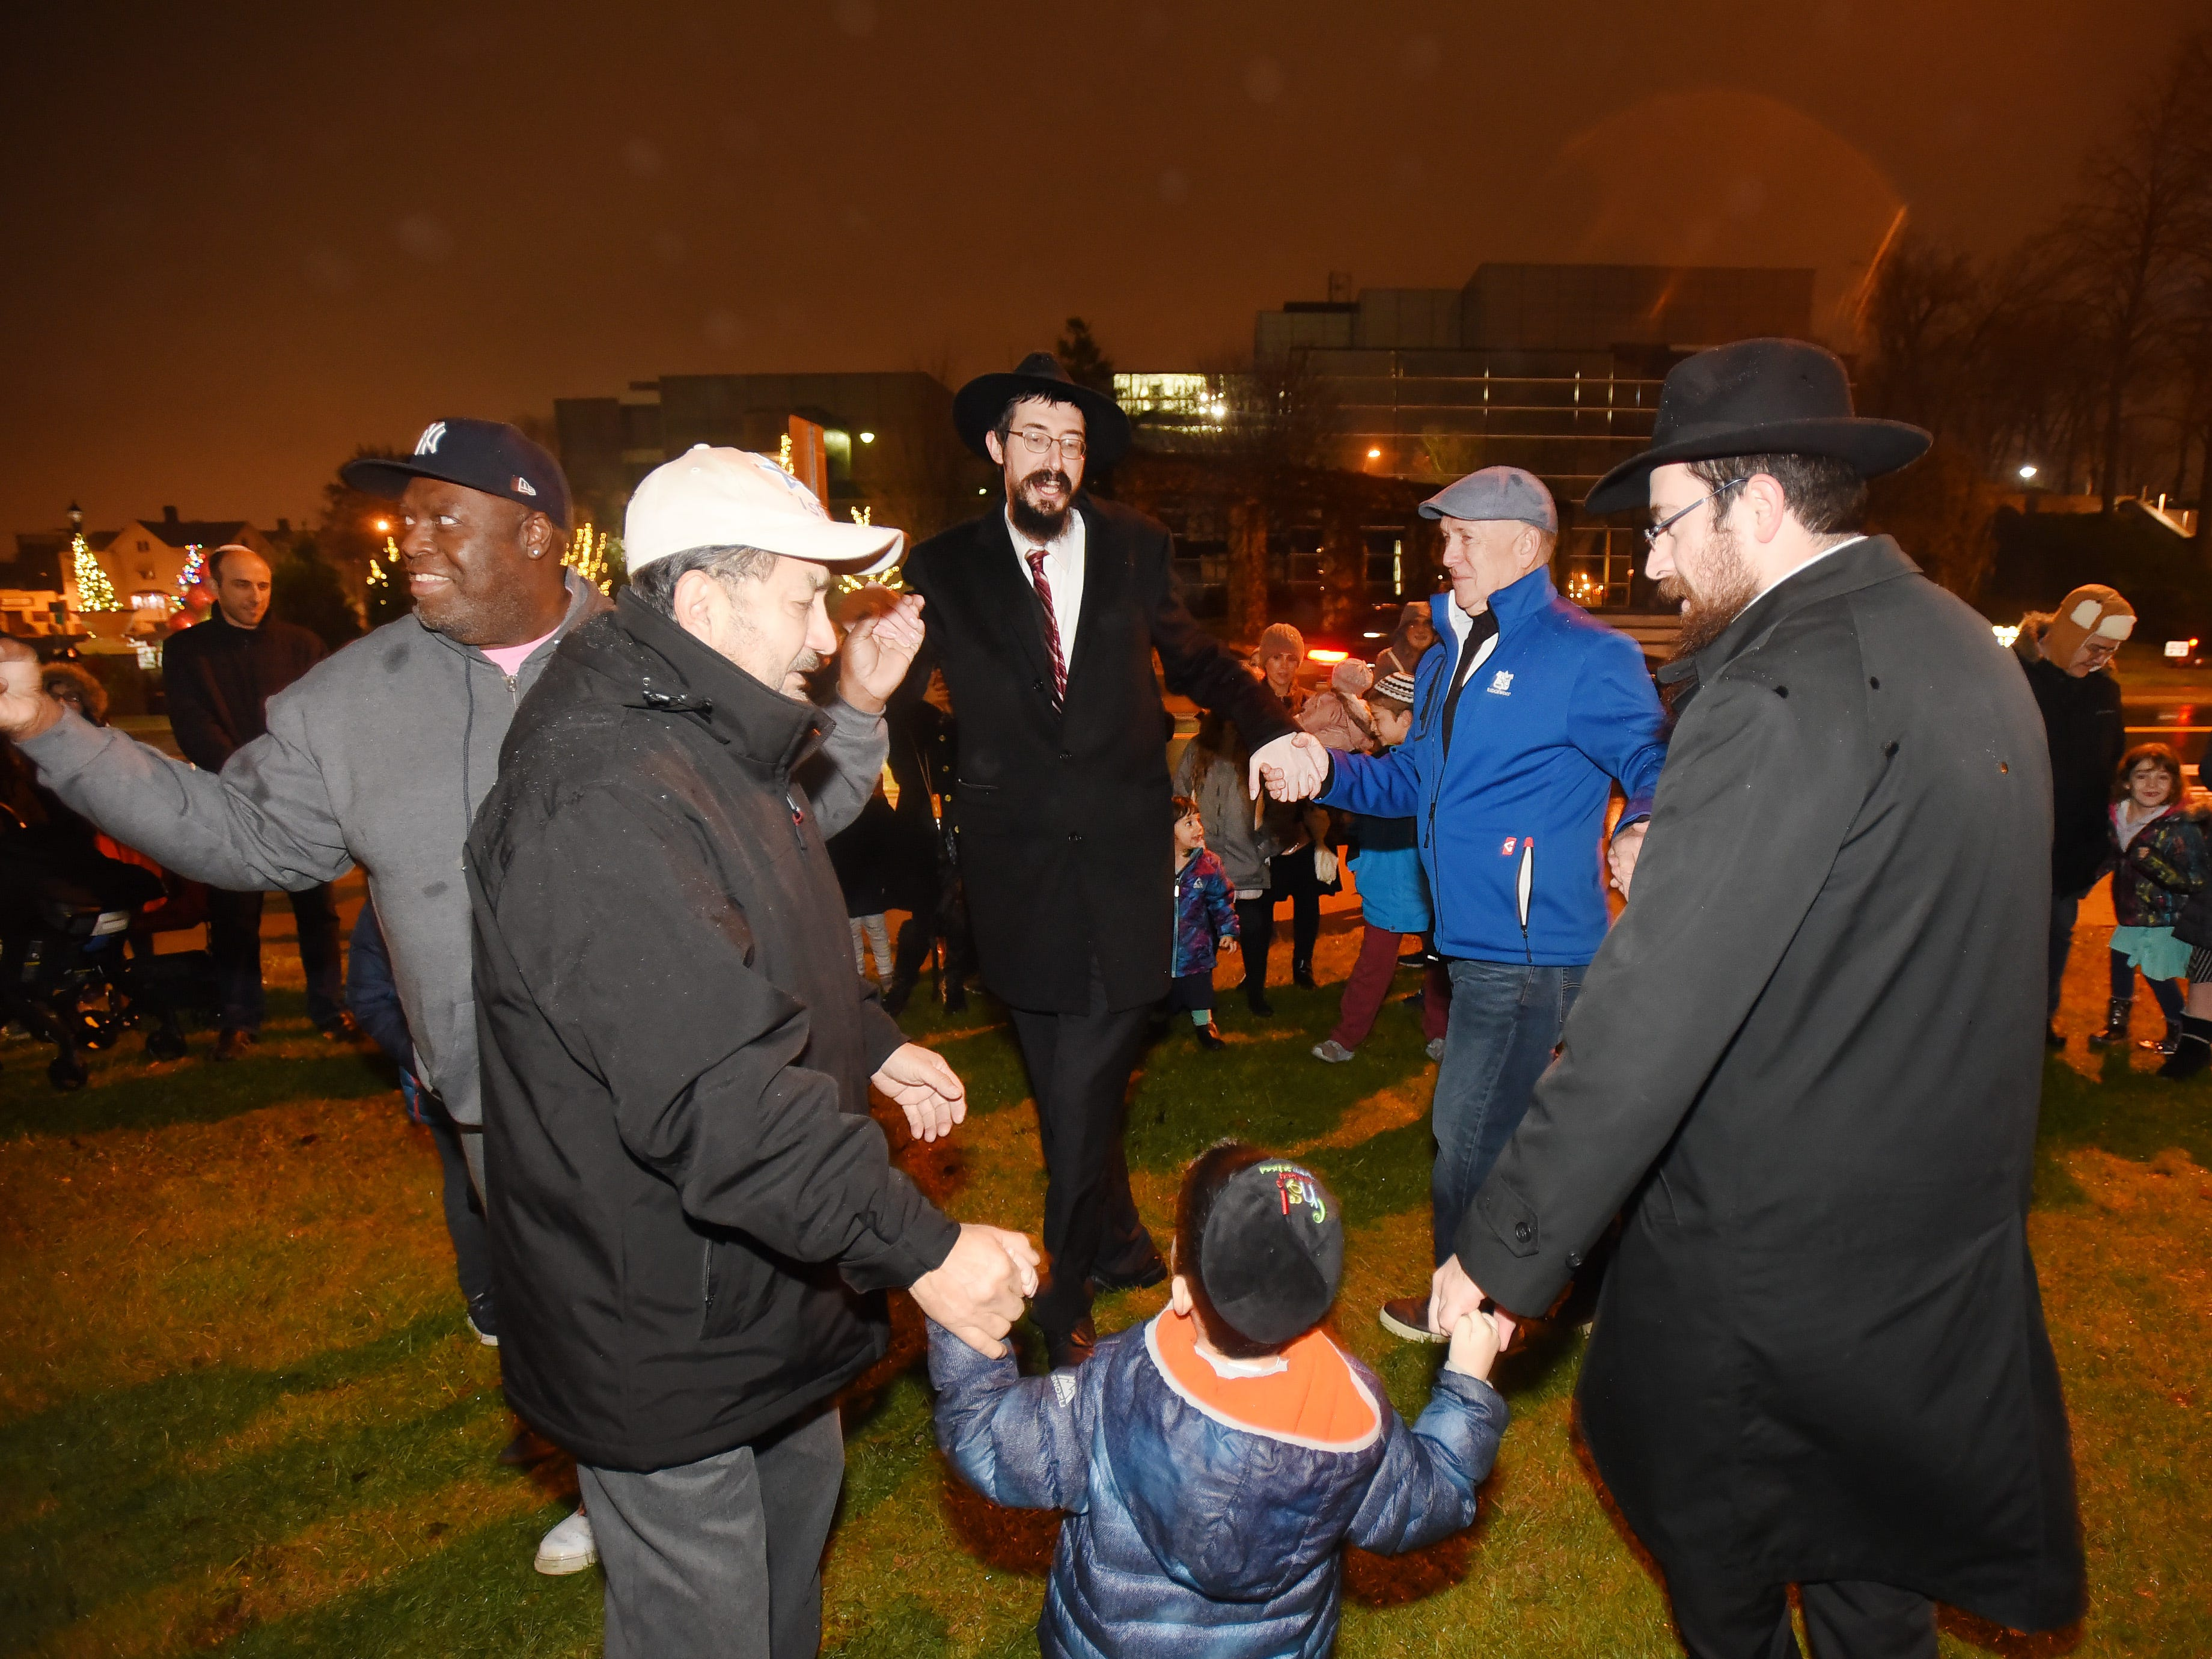 Rabbi Mendy Kaminker (center) from Chabad of Hackensack, Hackensack Mayor and Deputy Mayor and others, dance to celebrate the 2018 Hanukkah season following the lighting ceremony at the front lawn of Bergen County Courthouse in Hackensack on 12/02/18.